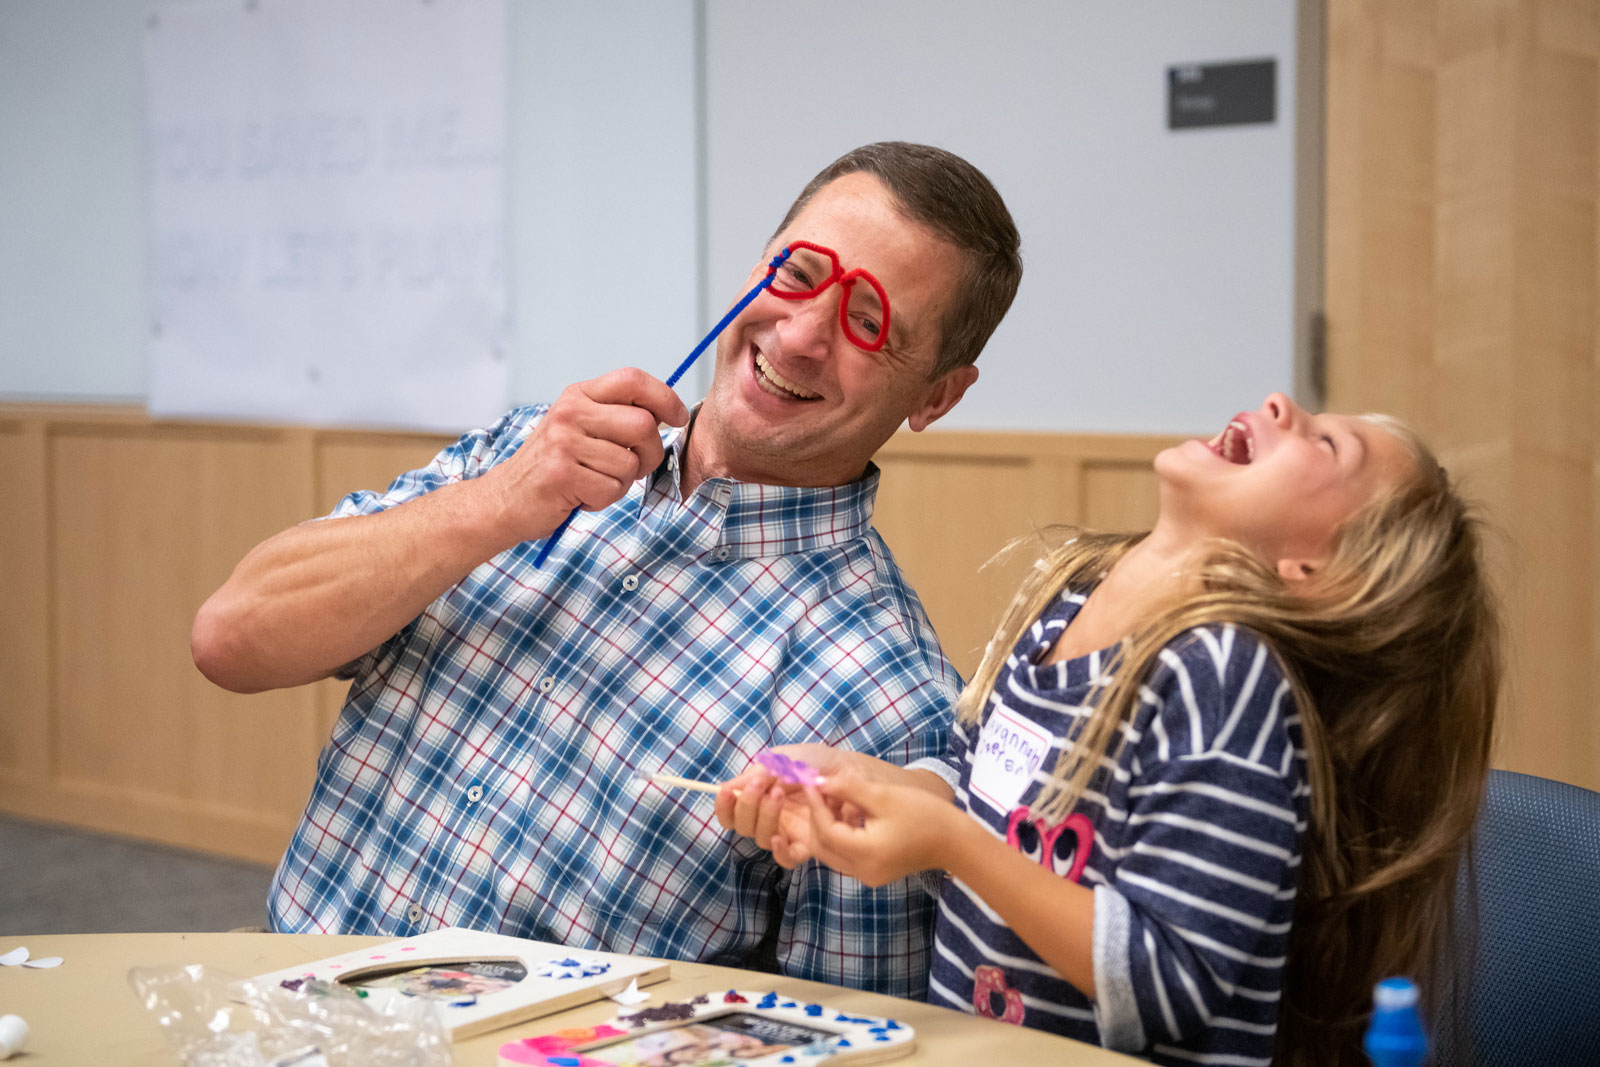 Dr. Christopher O'Hara holds up pipe cleaners twisted into two circles on a straight length of pipe cleaner and leans toward Savannah Doster, who throws back her head and laughs. The two are seated at a table upon which are frames and craft materials.